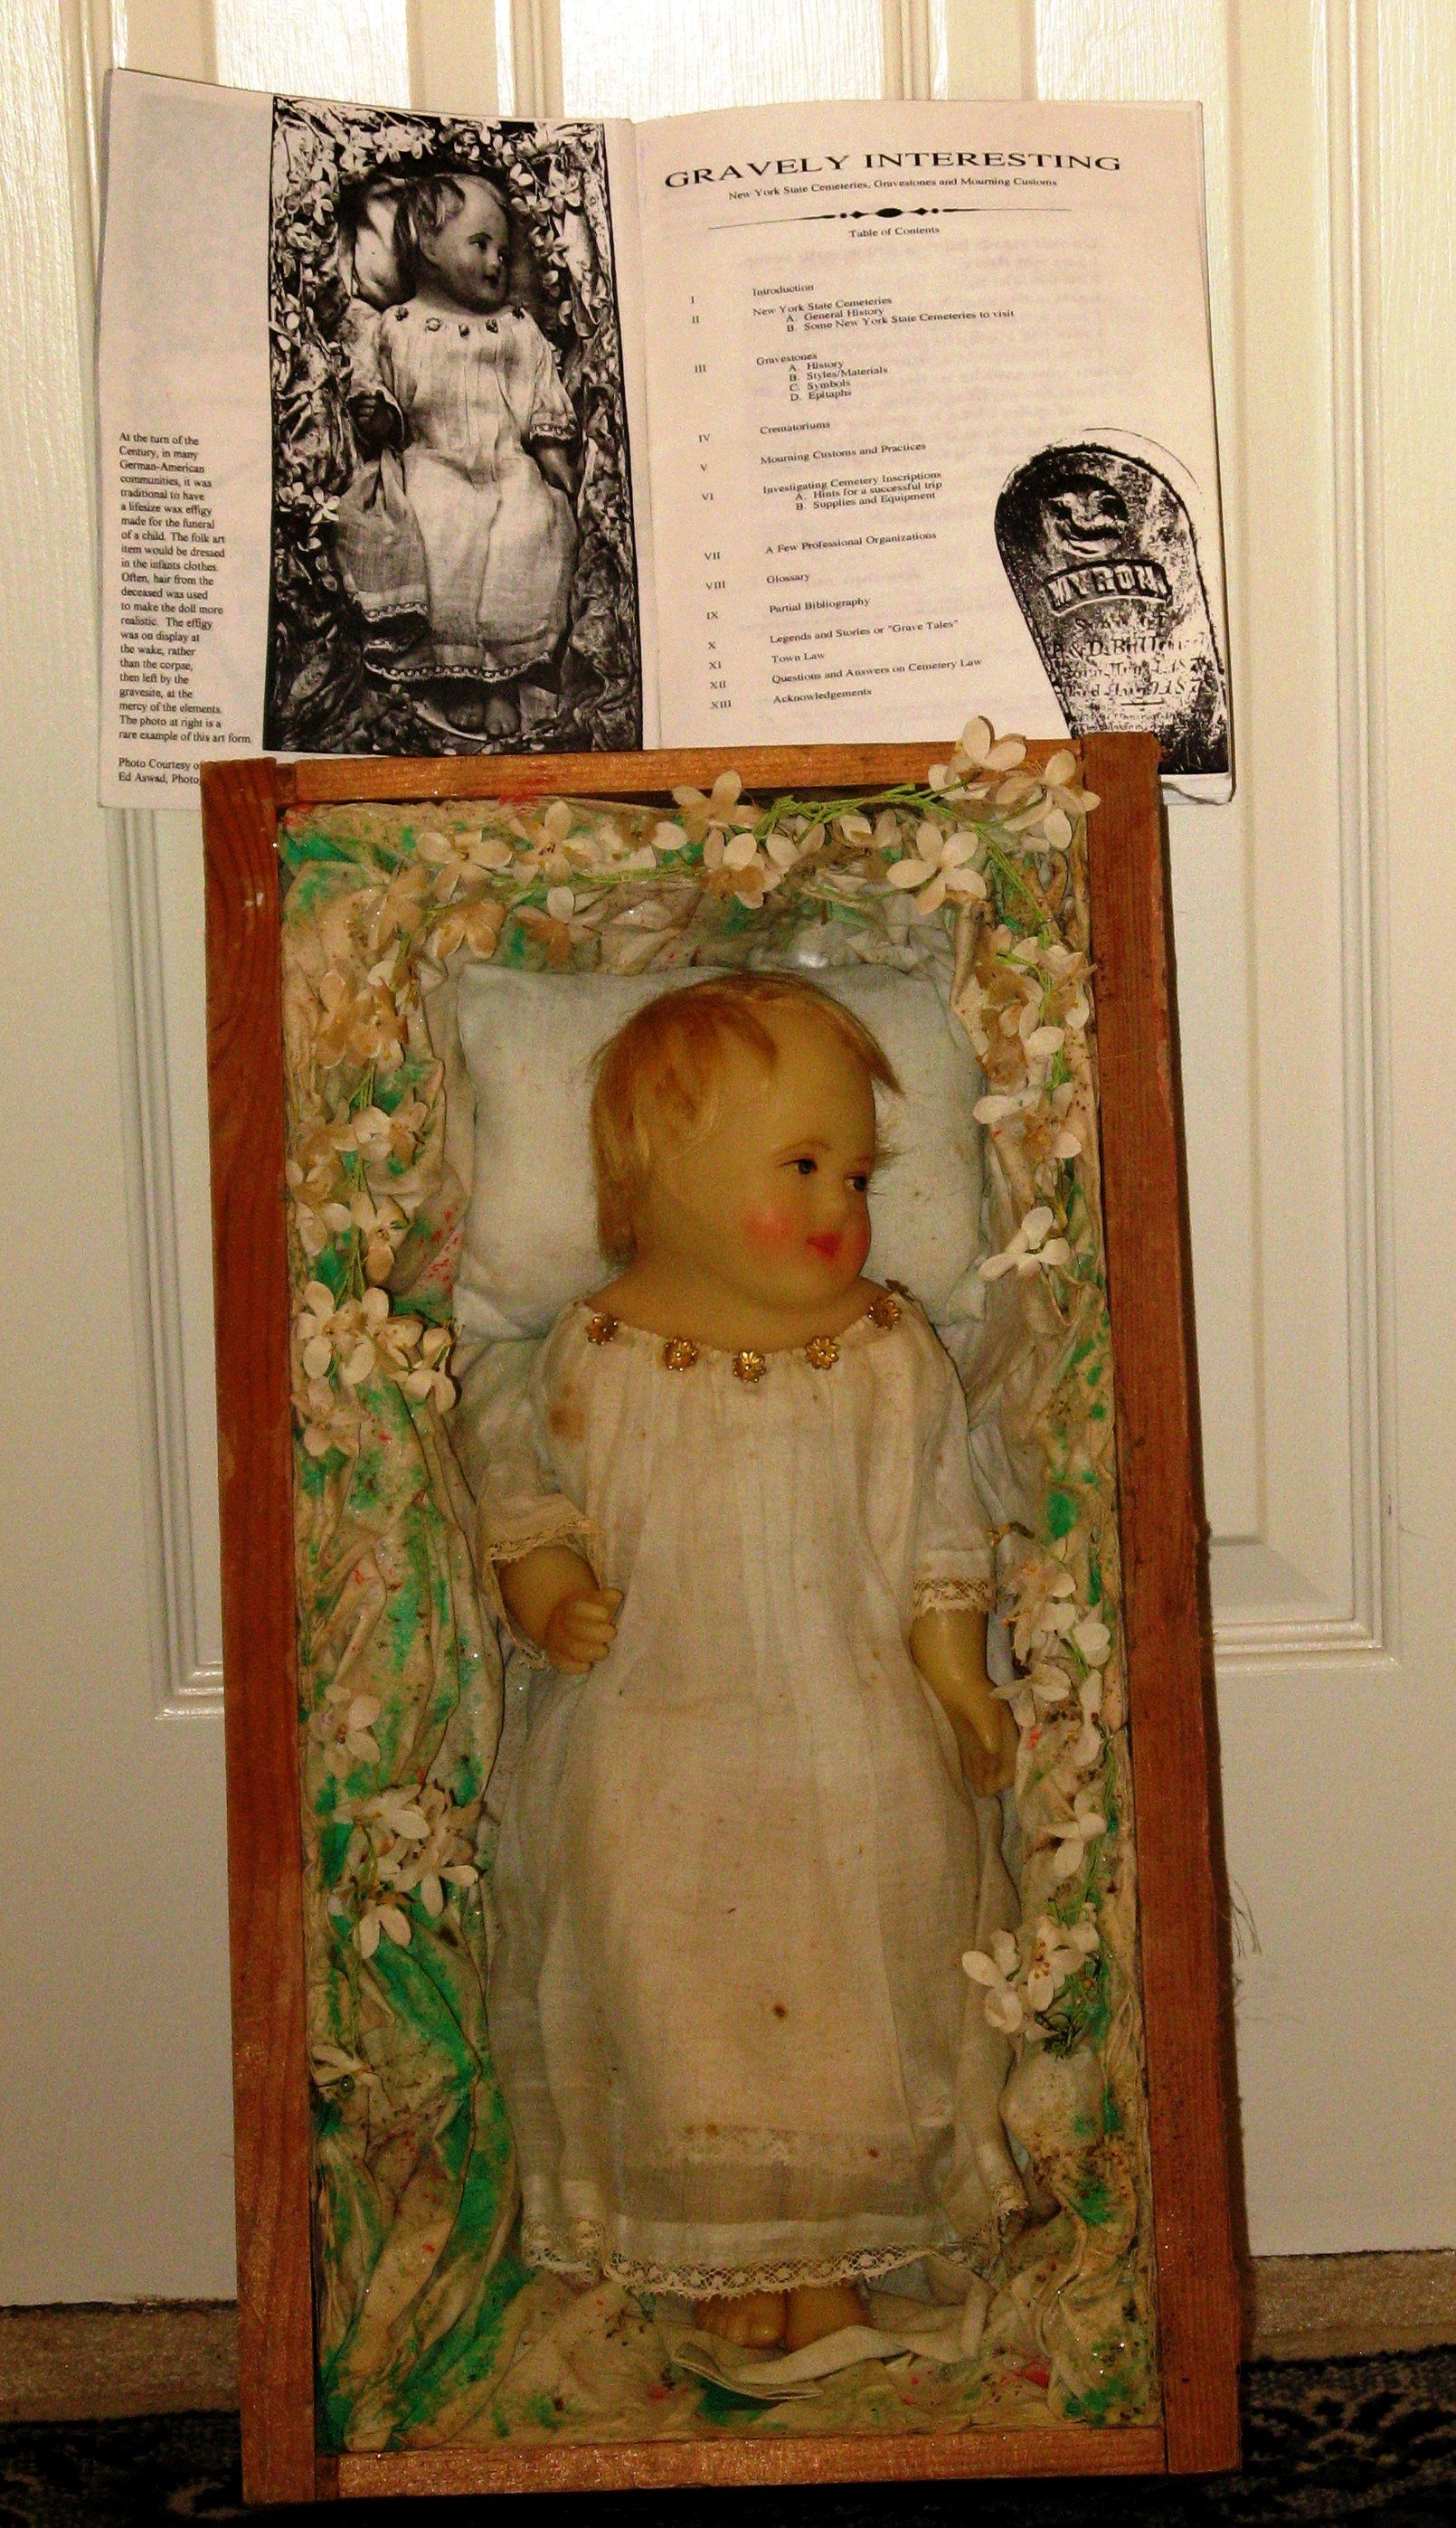 Grave dolls were sometimes made and left at the grave of a deceased infant. It was made of wax, and had locks of hair from the deceased child. It sounds morbid by today's standards, but it was not too uncommon in the 19th century.